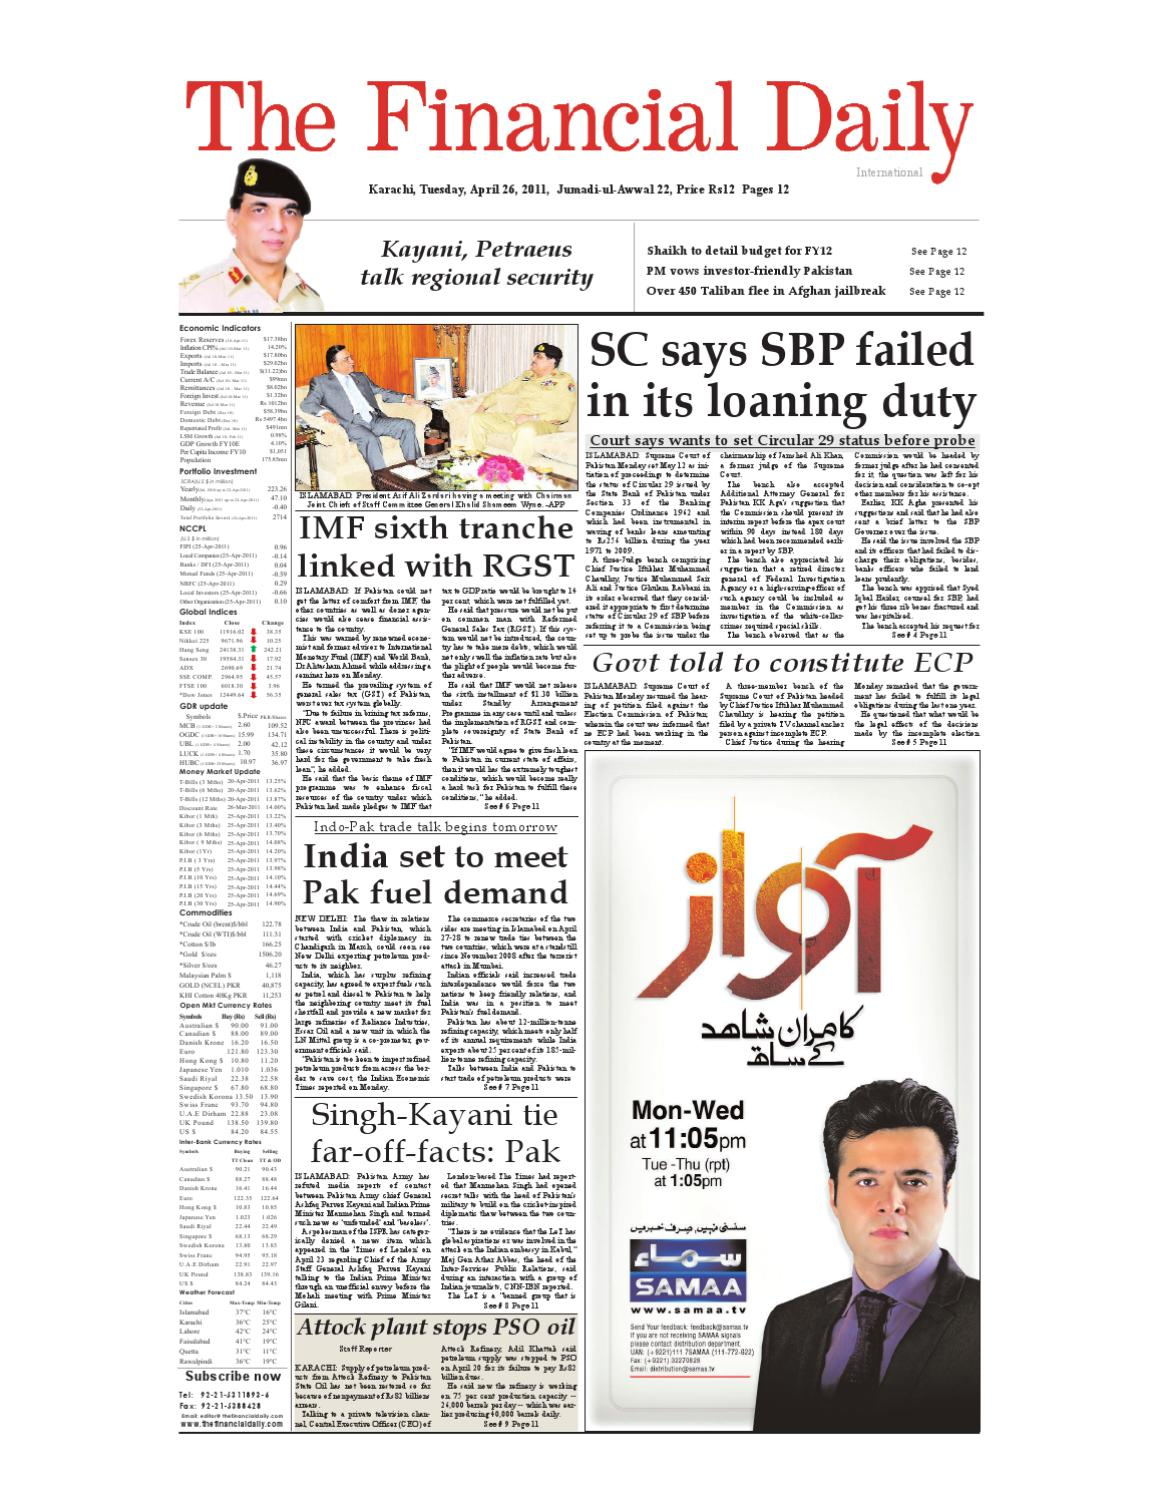 TheFinancialDaily-Epaper-26-04-2011 by The Financial Daily - issuu